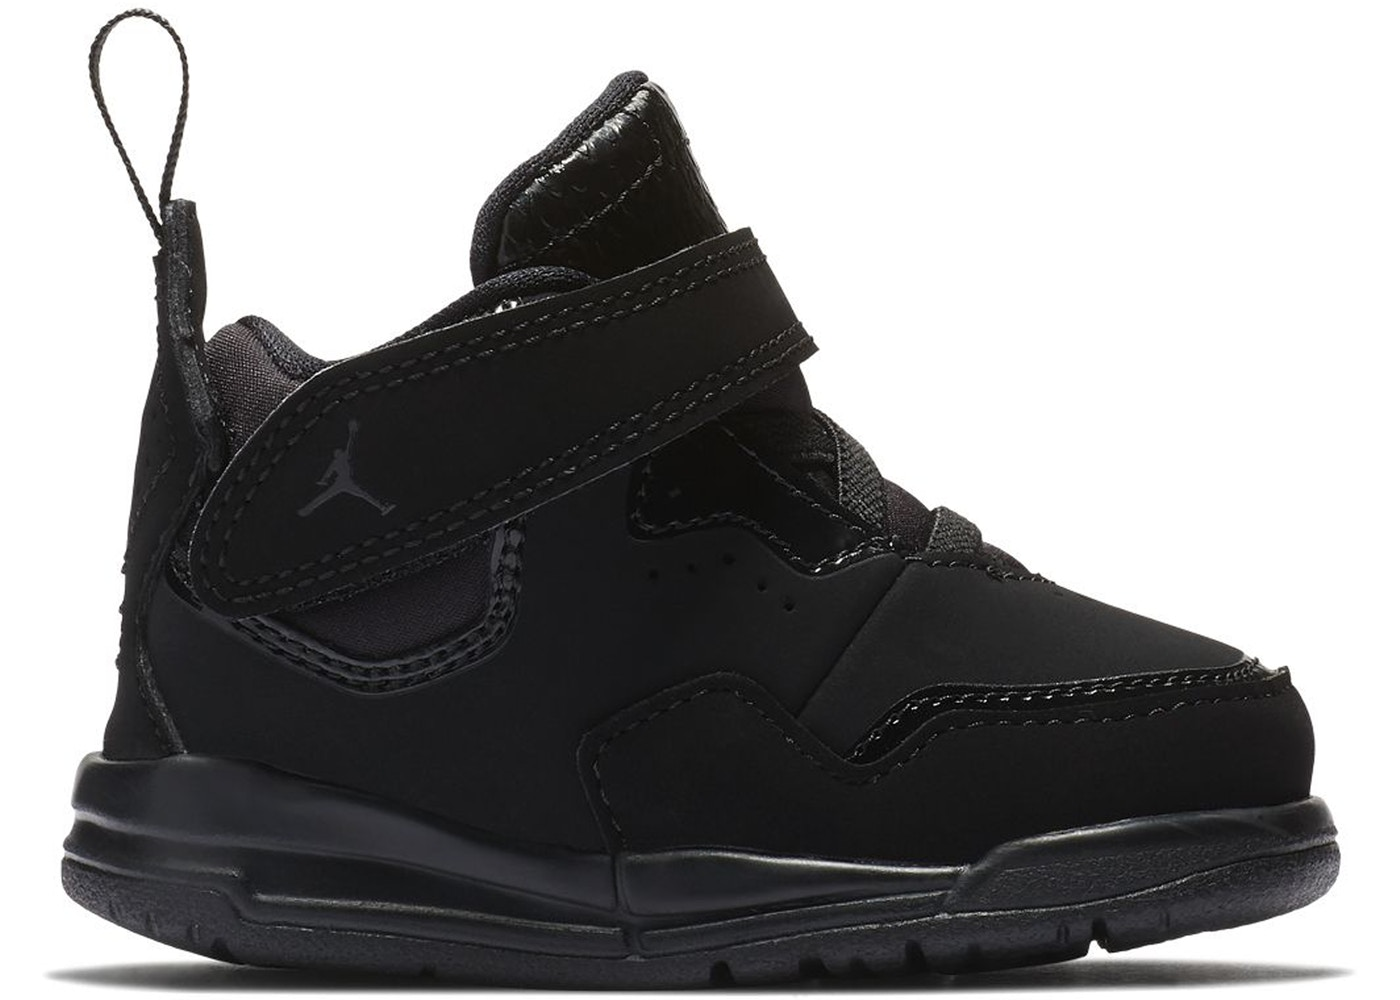 482c96cef1f Air Jordan Other Shoes - Lowest Ask